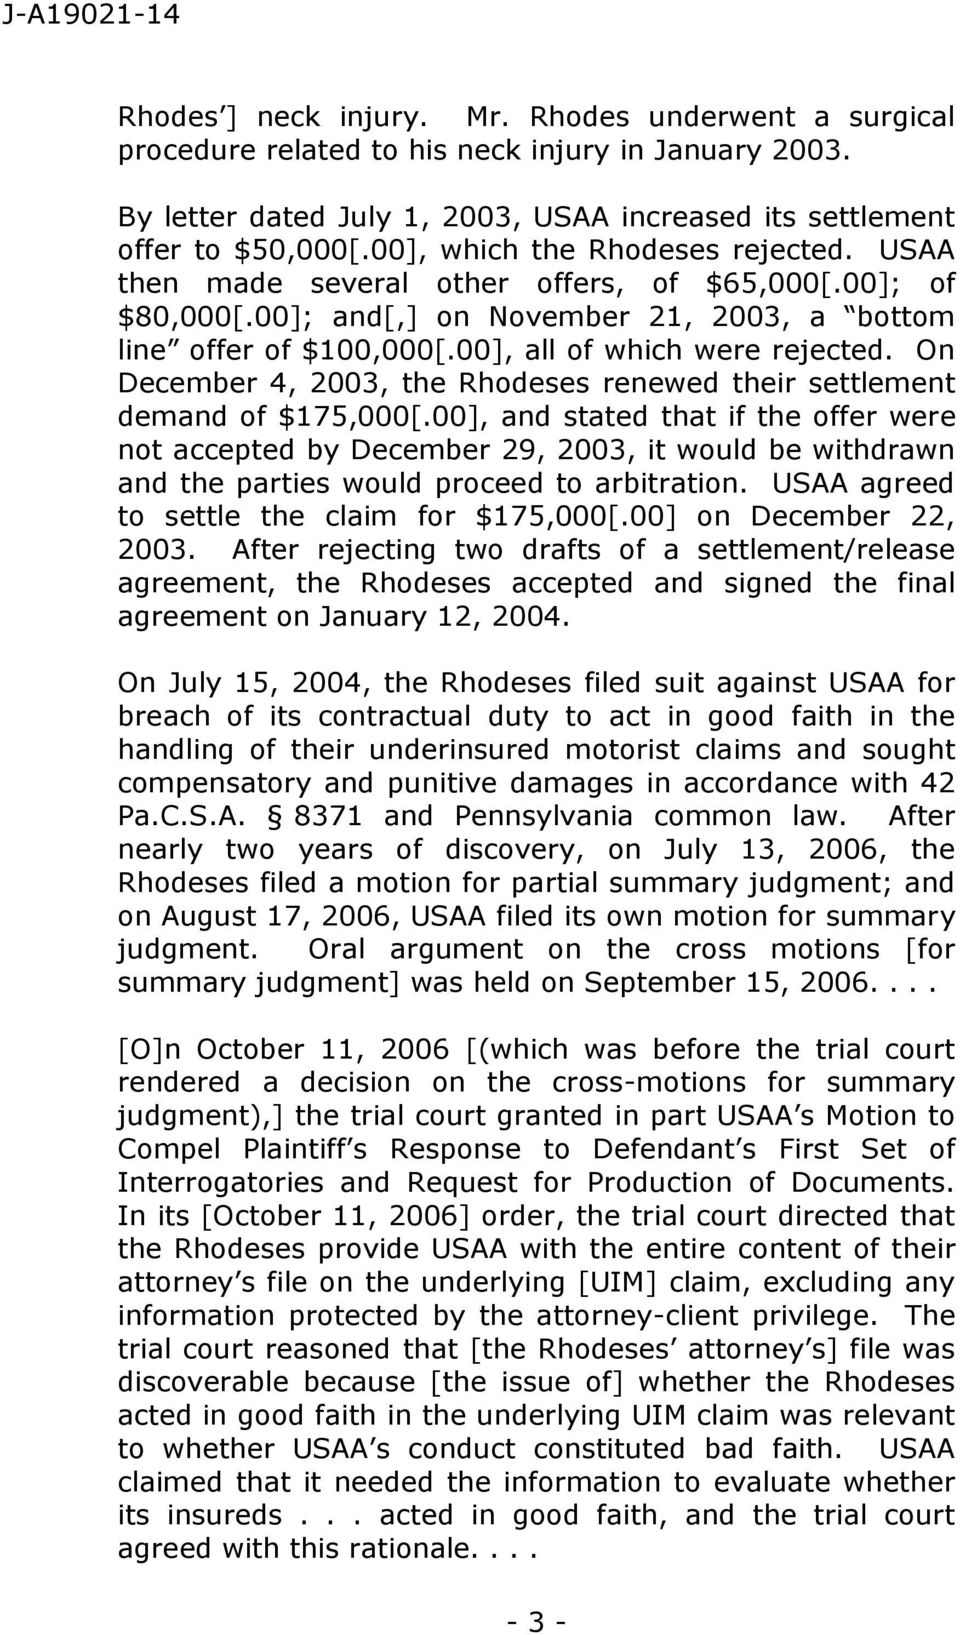 On December 4, 2003, the Rhodeses renewed their settlement demand of $175,000[.